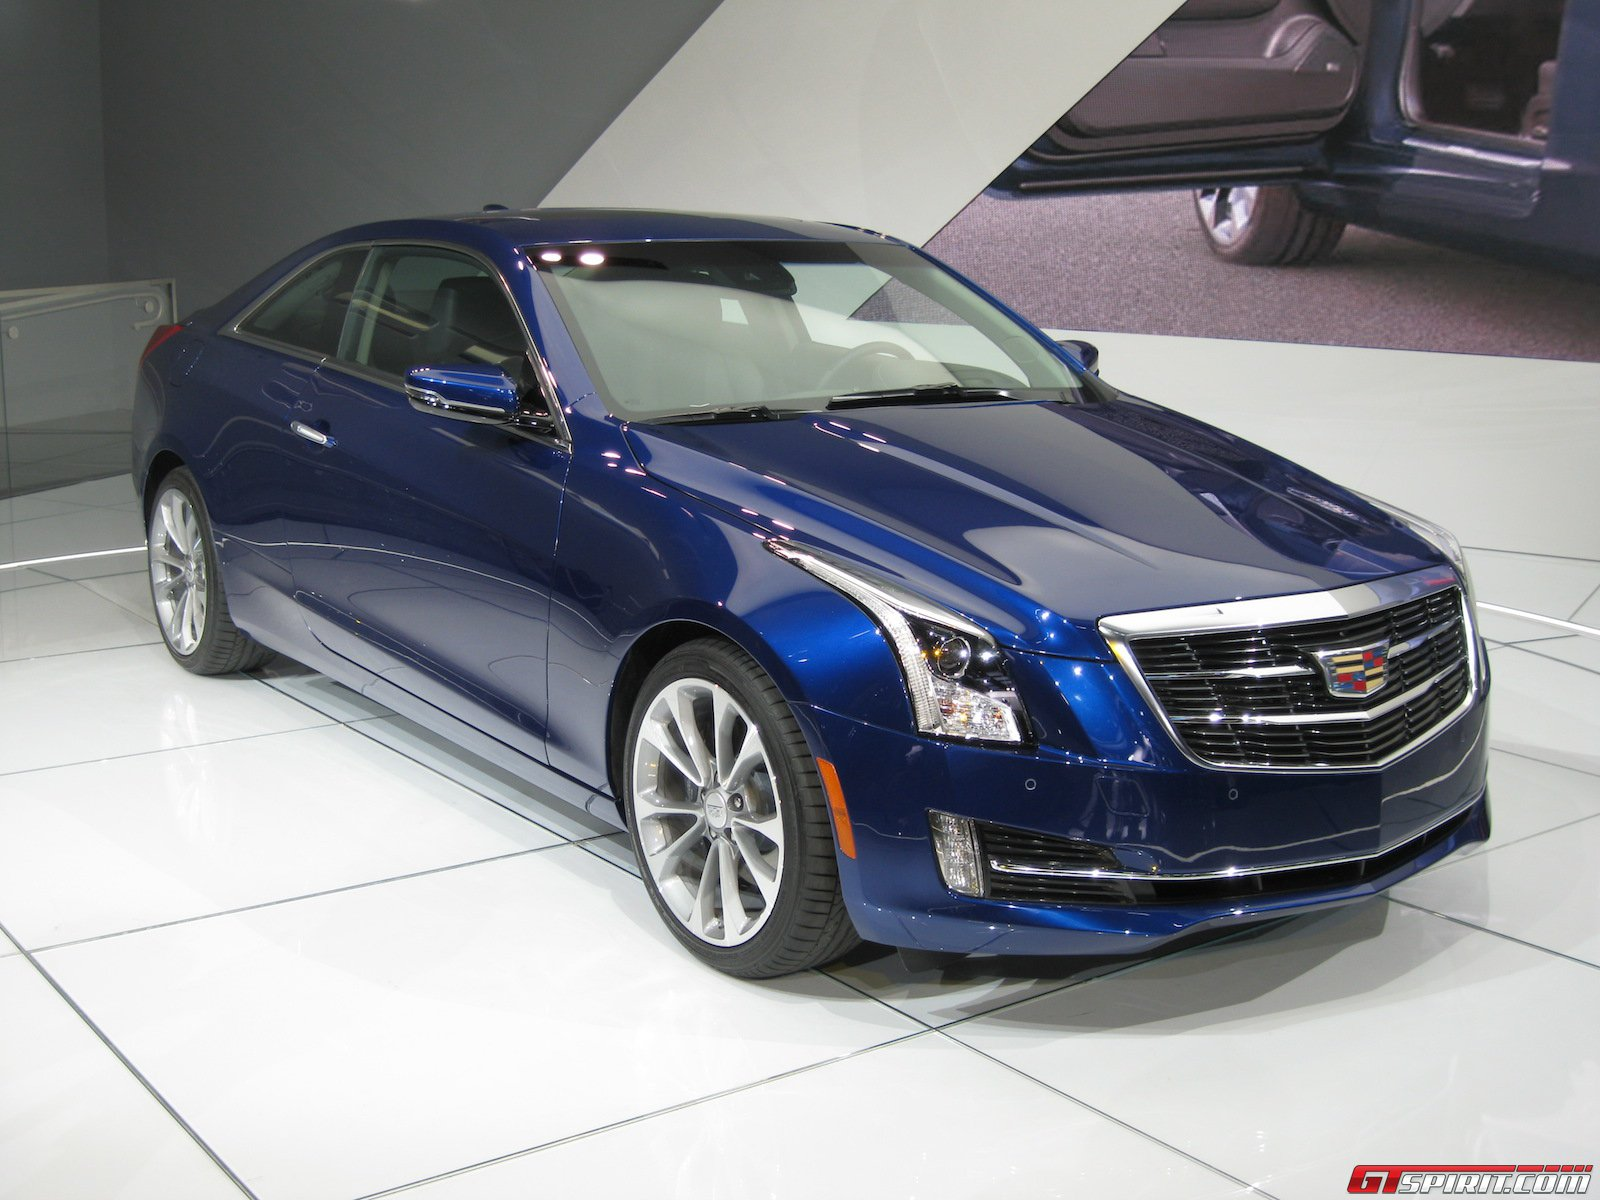 2014 cadillac ats blue 200 interior and exterior images. Black Bedroom Furniture Sets. Home Design Ideas